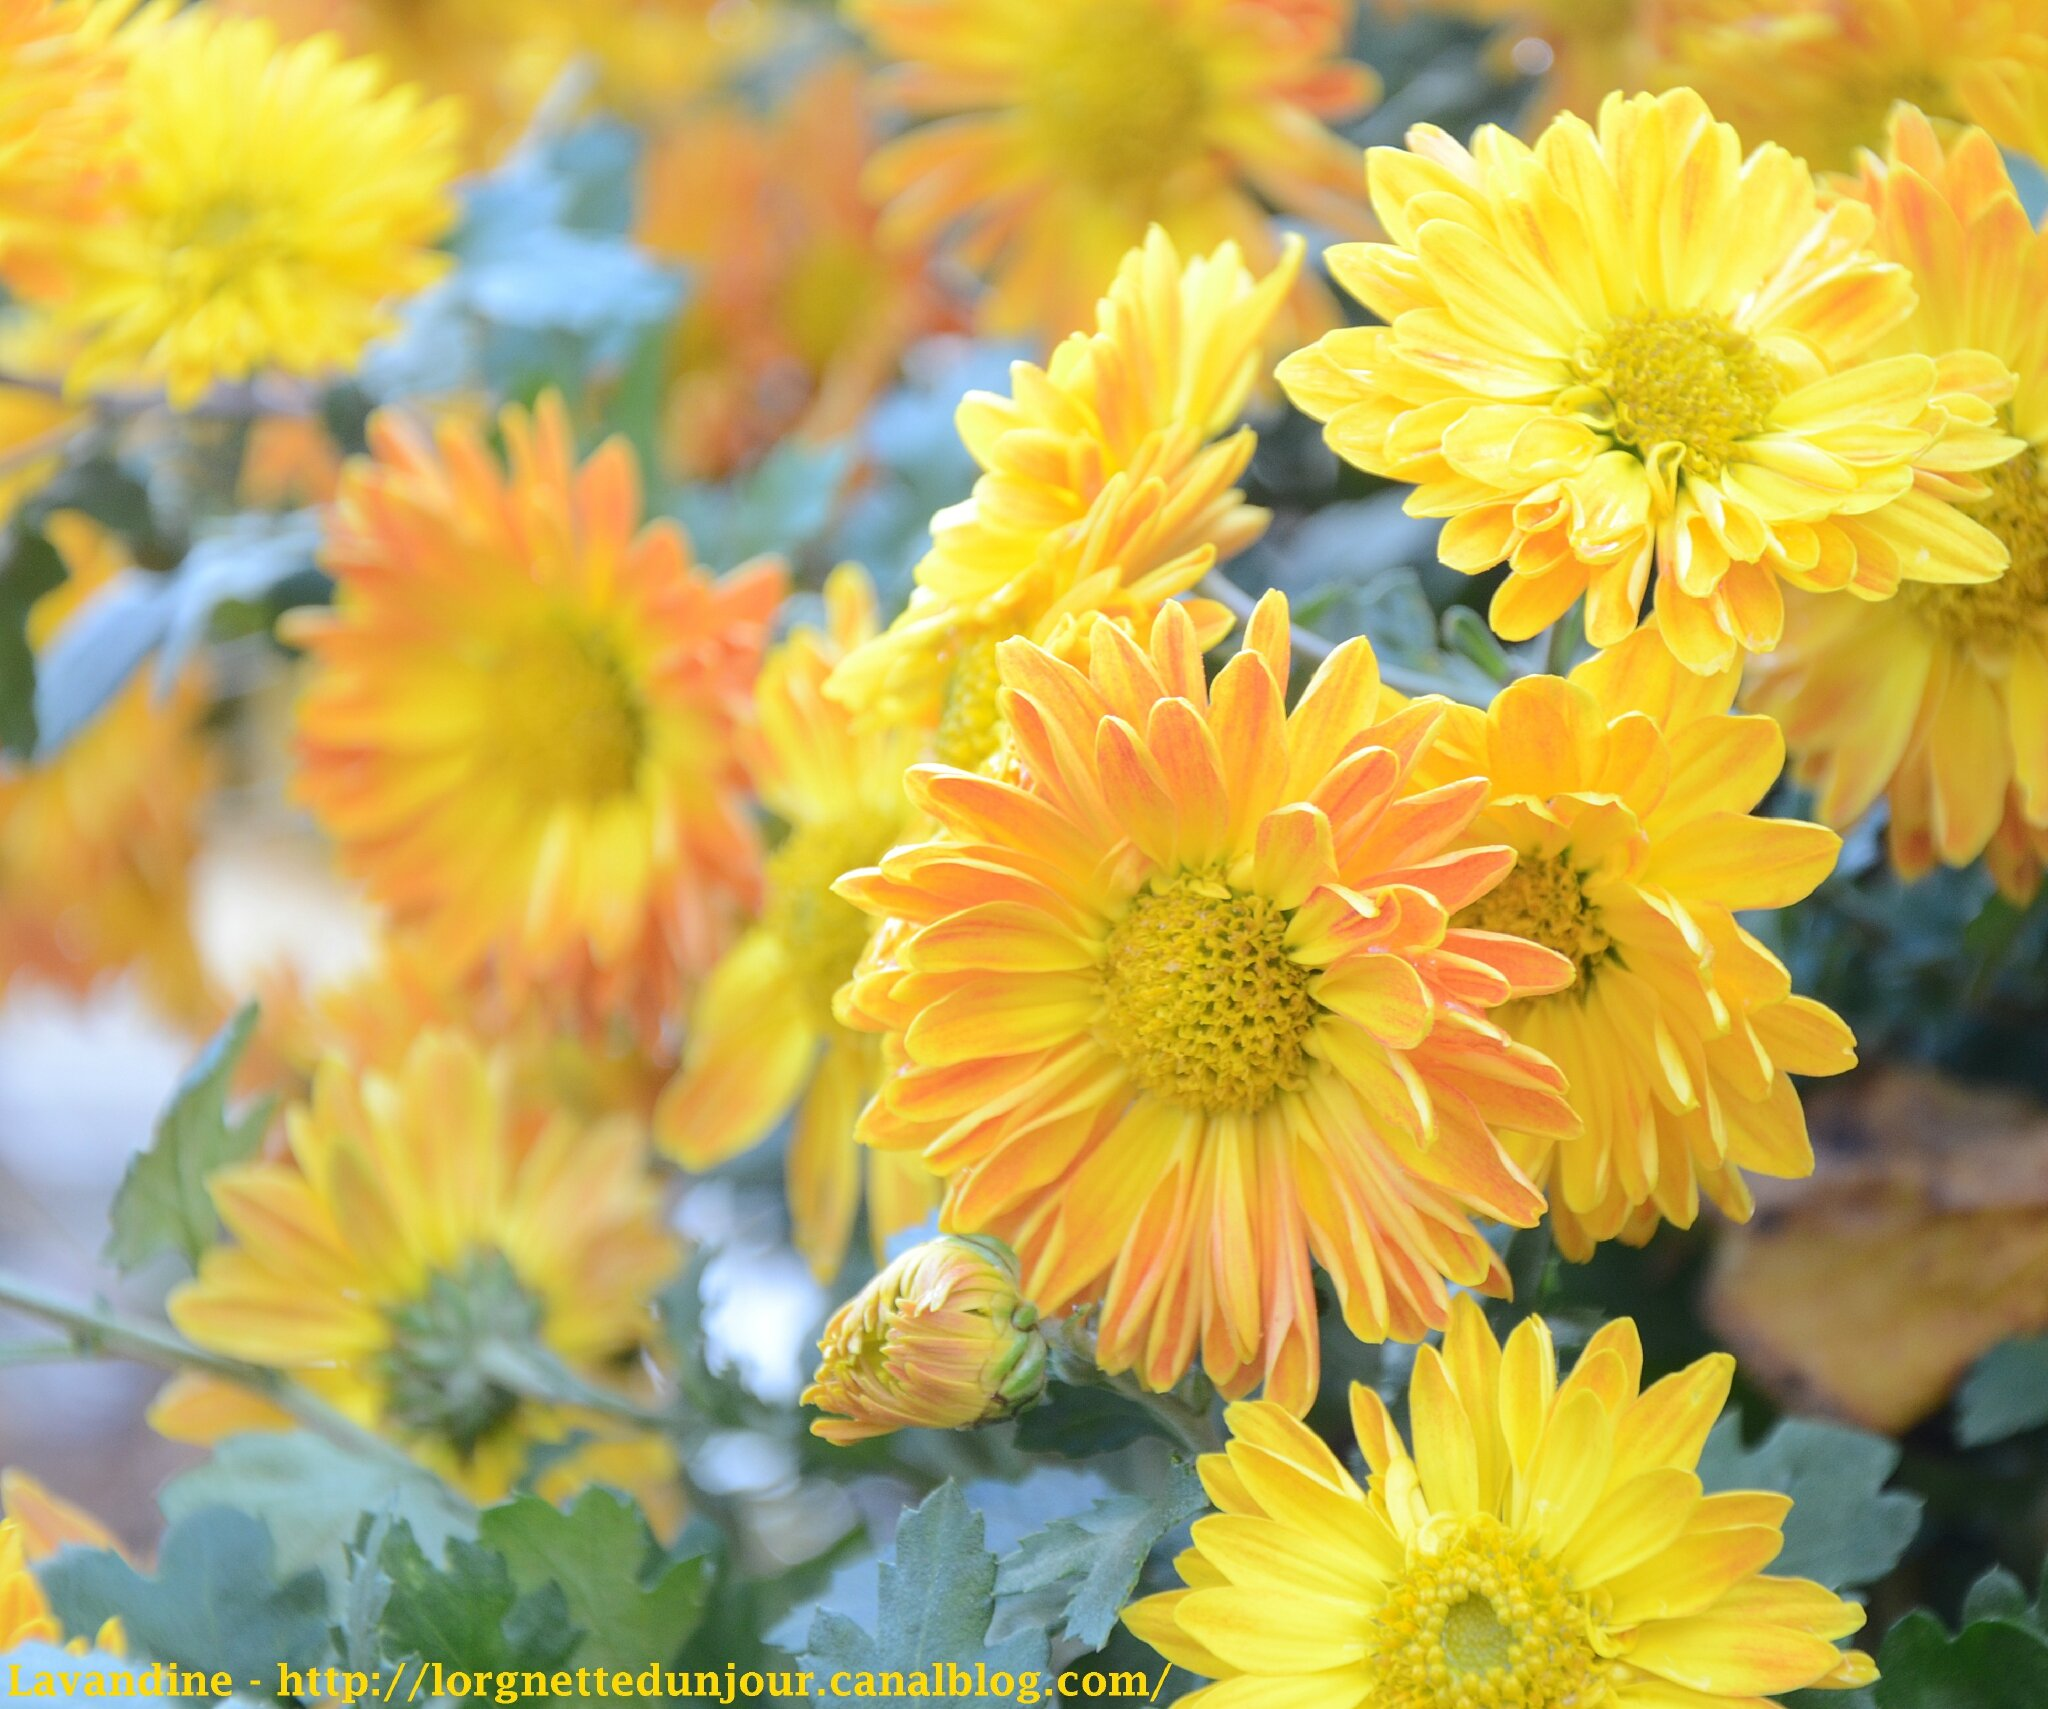 02/12/13 : Chrysanthema 2013